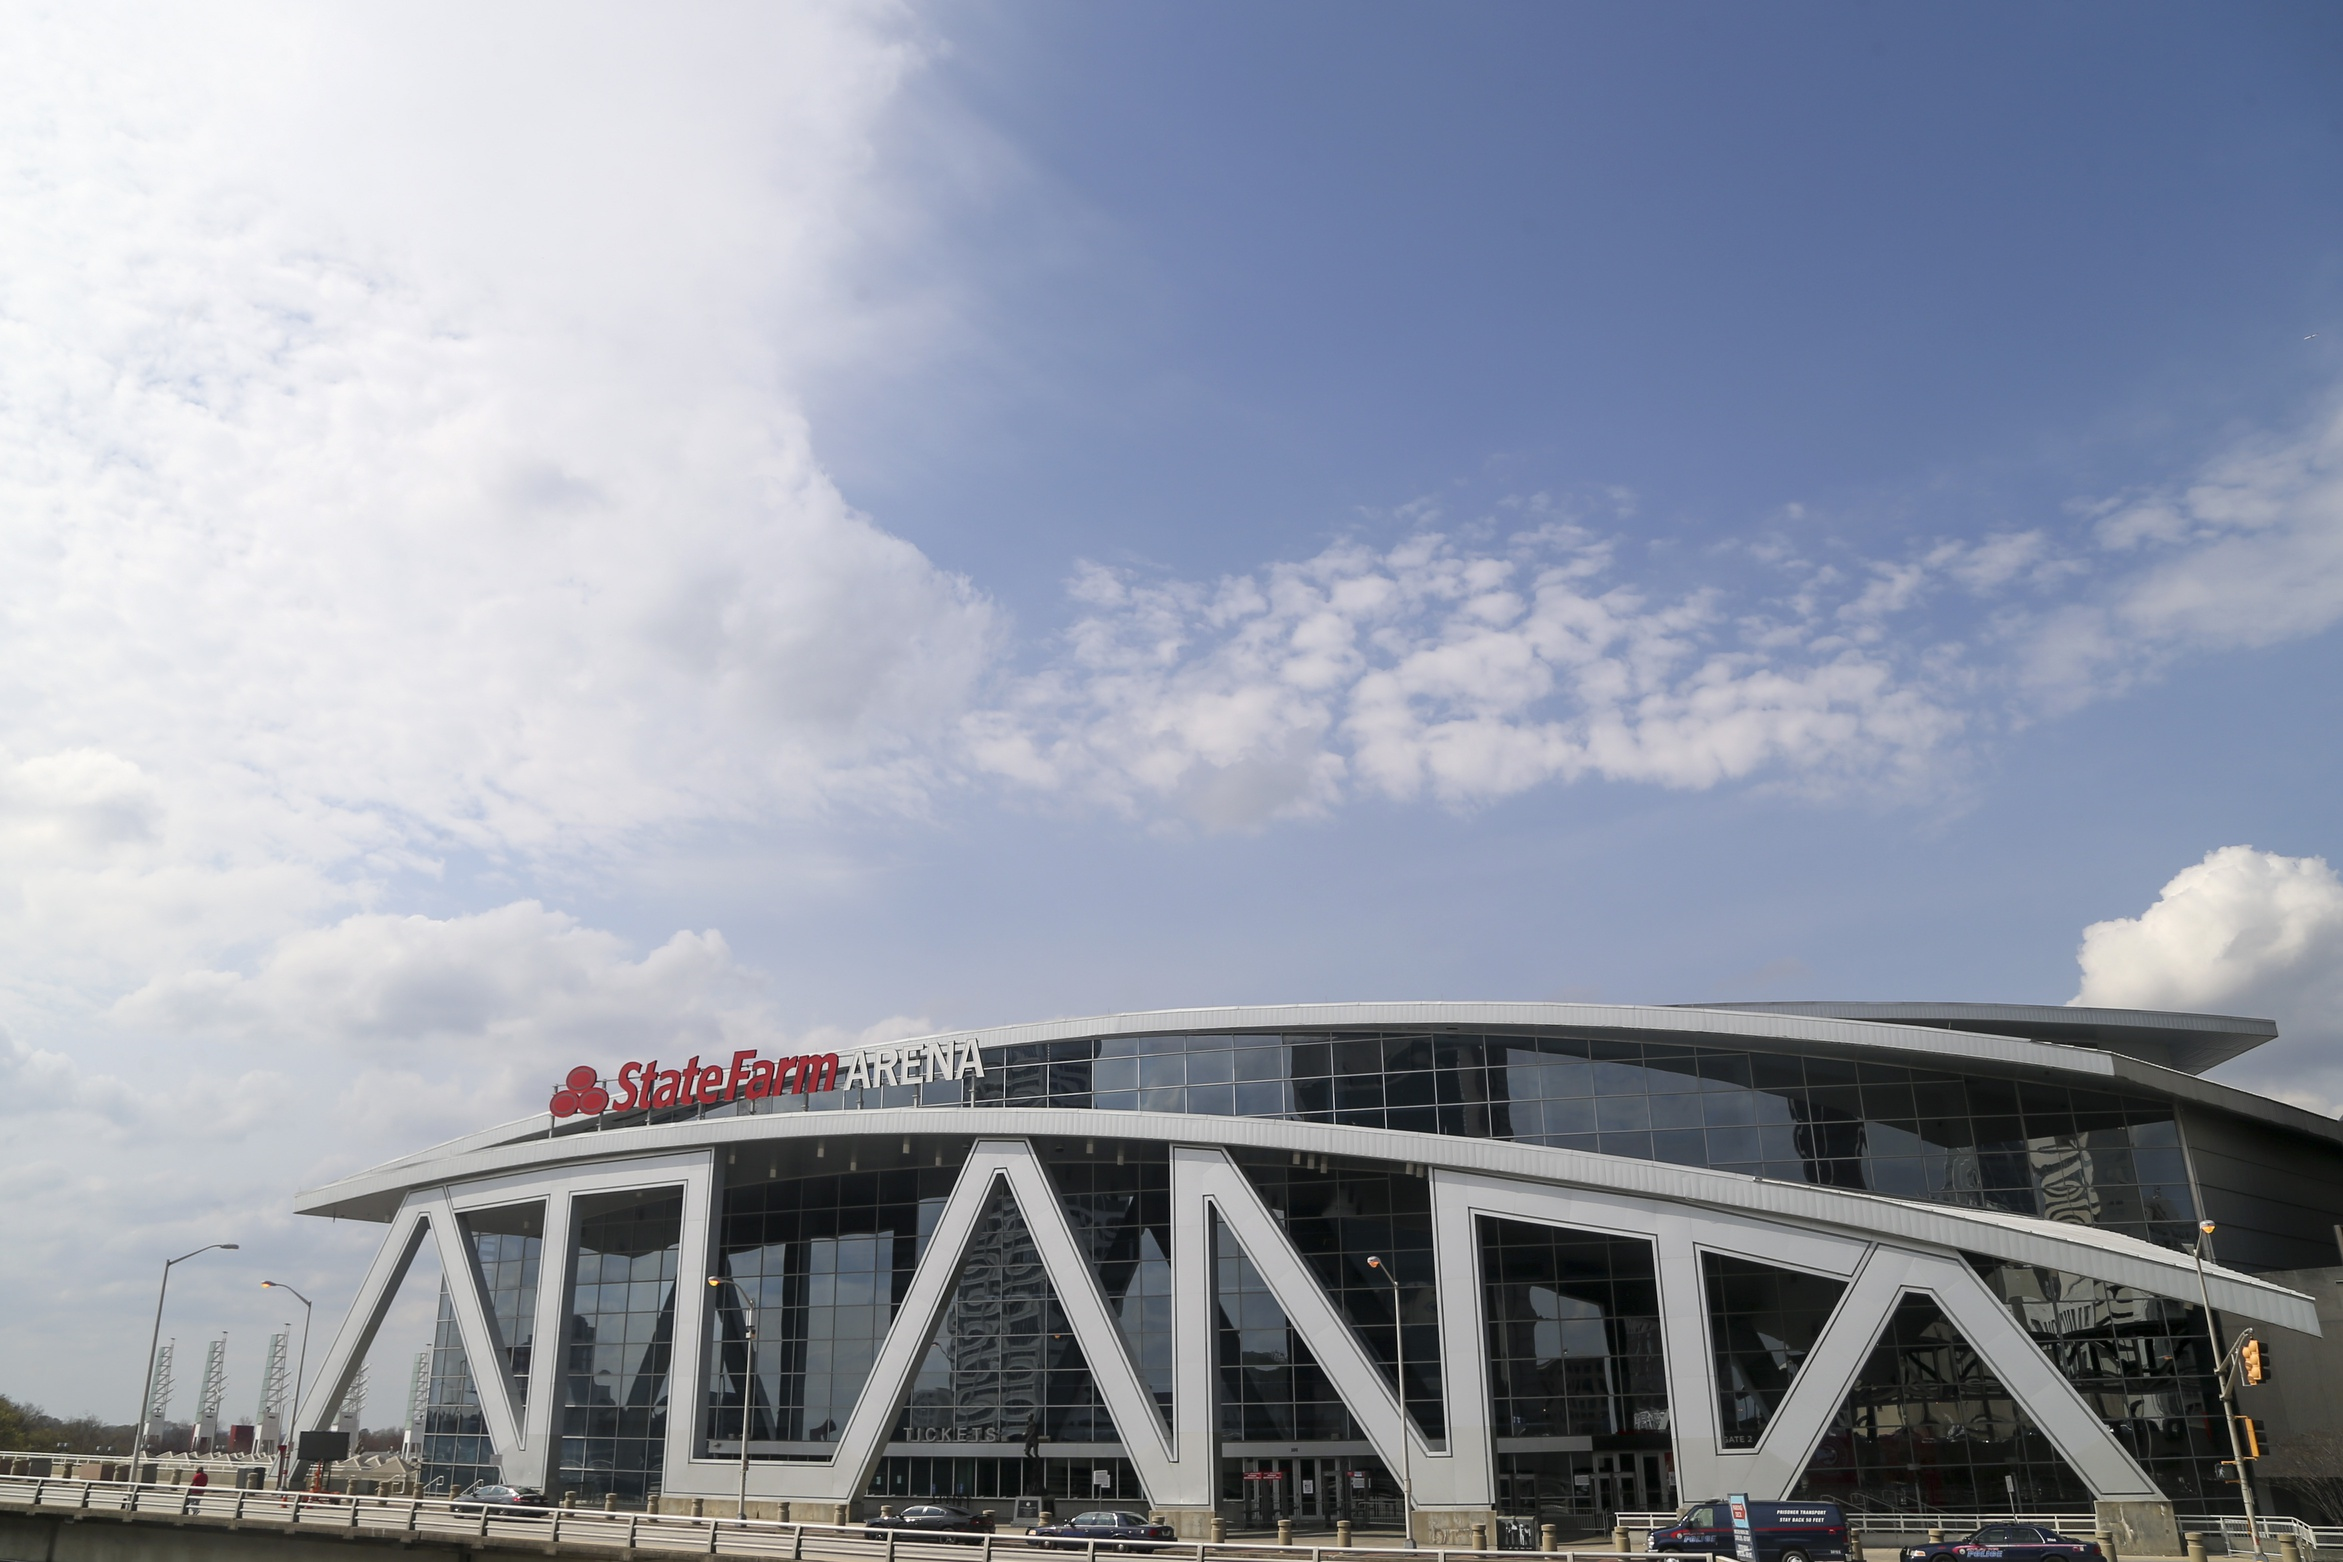 State Farm Arena to serve as early-voting site for Jan. 5 runoff election in Georgia